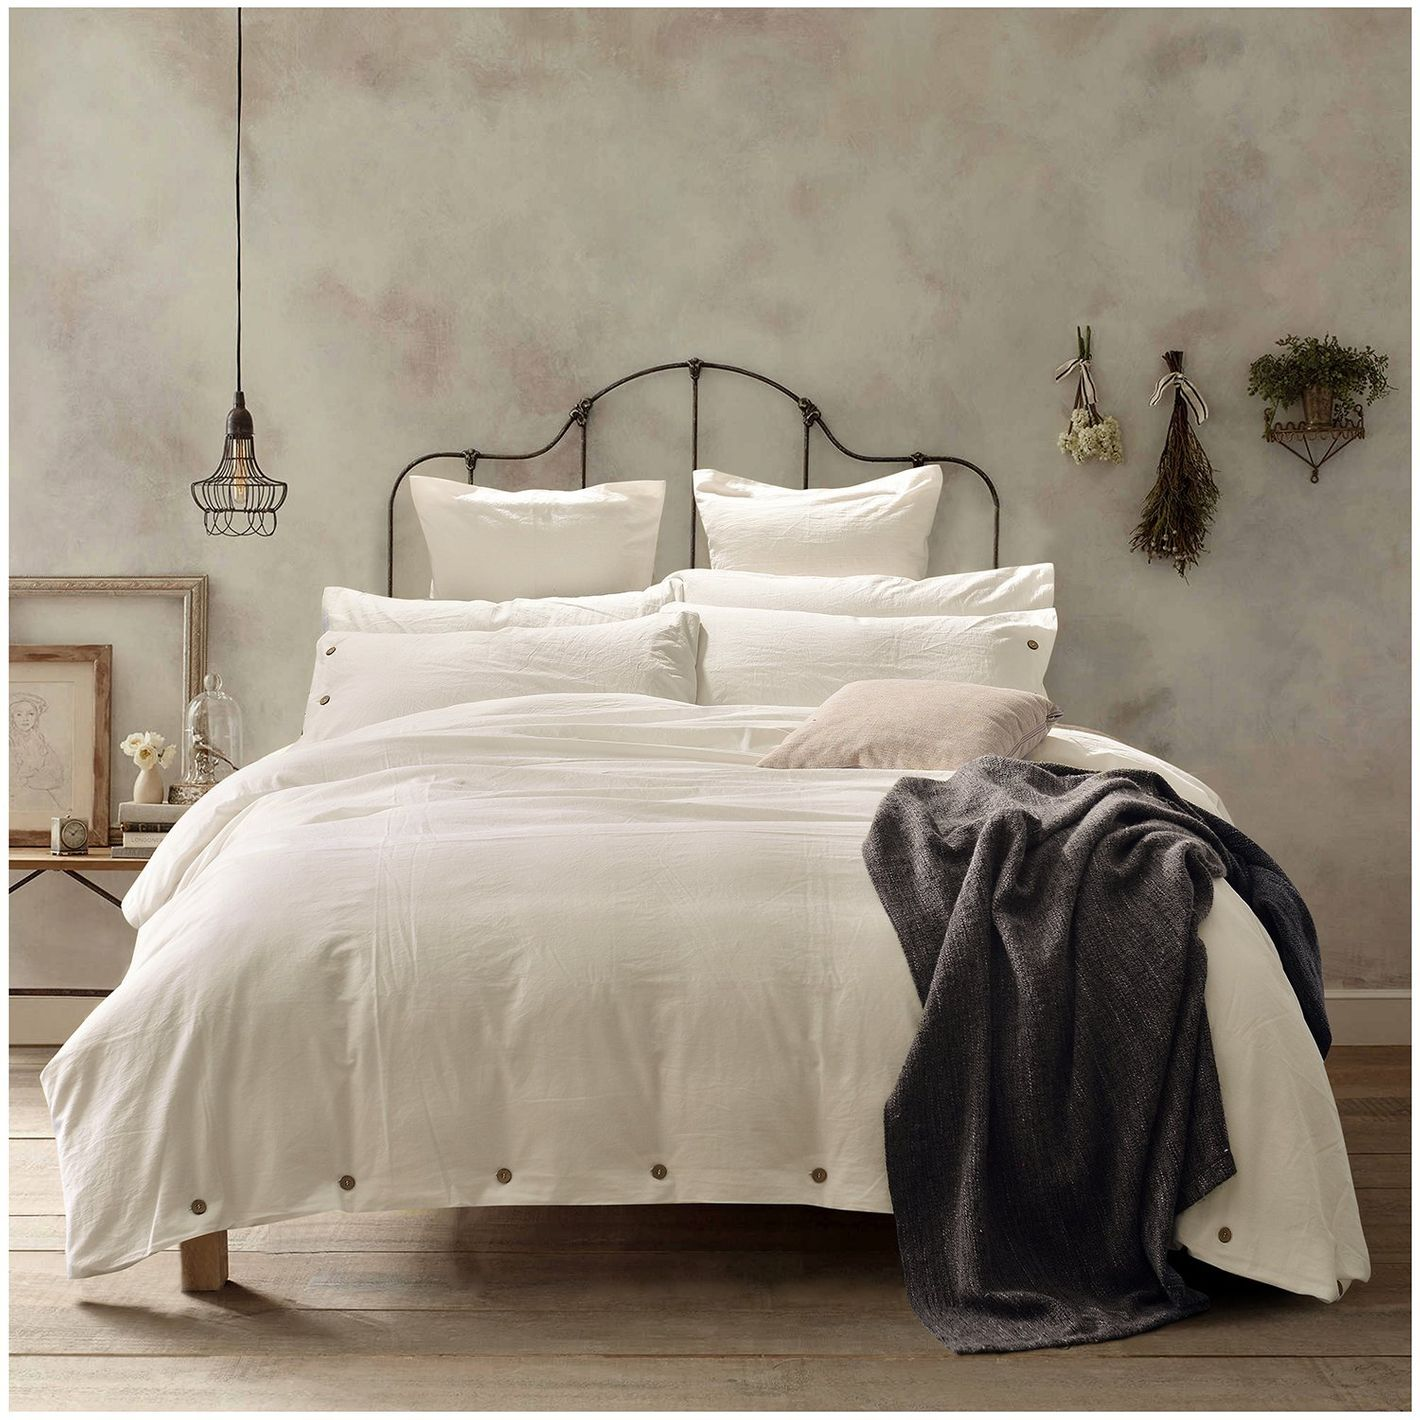 review classicduvetcover duvet covers in the best buy to